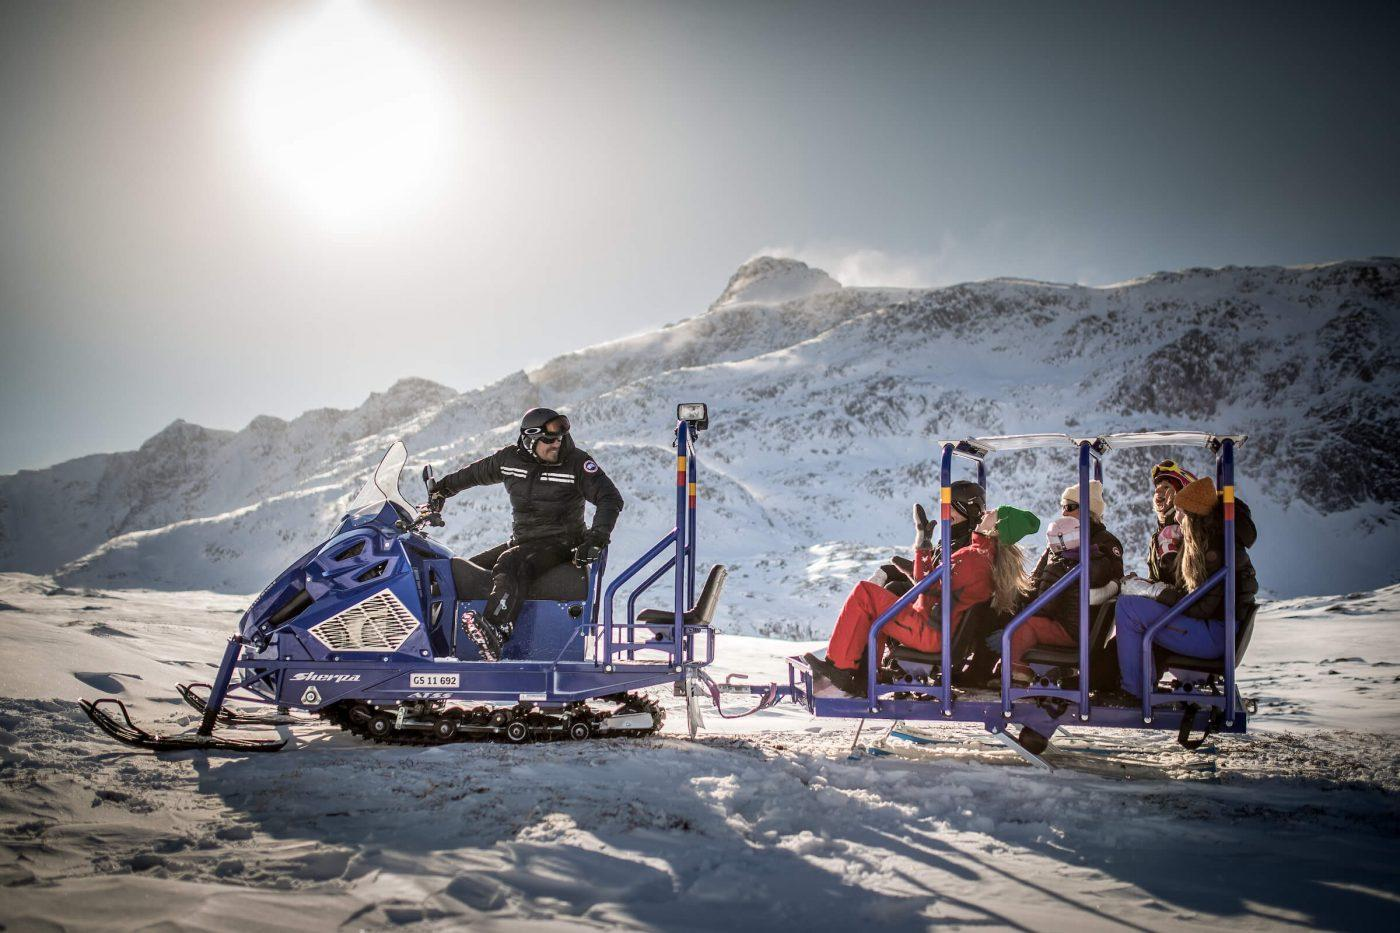 Passengers on the Sisimiut snowmobile bus in Greenland having fun in the sun. Photo by Mads Pihl